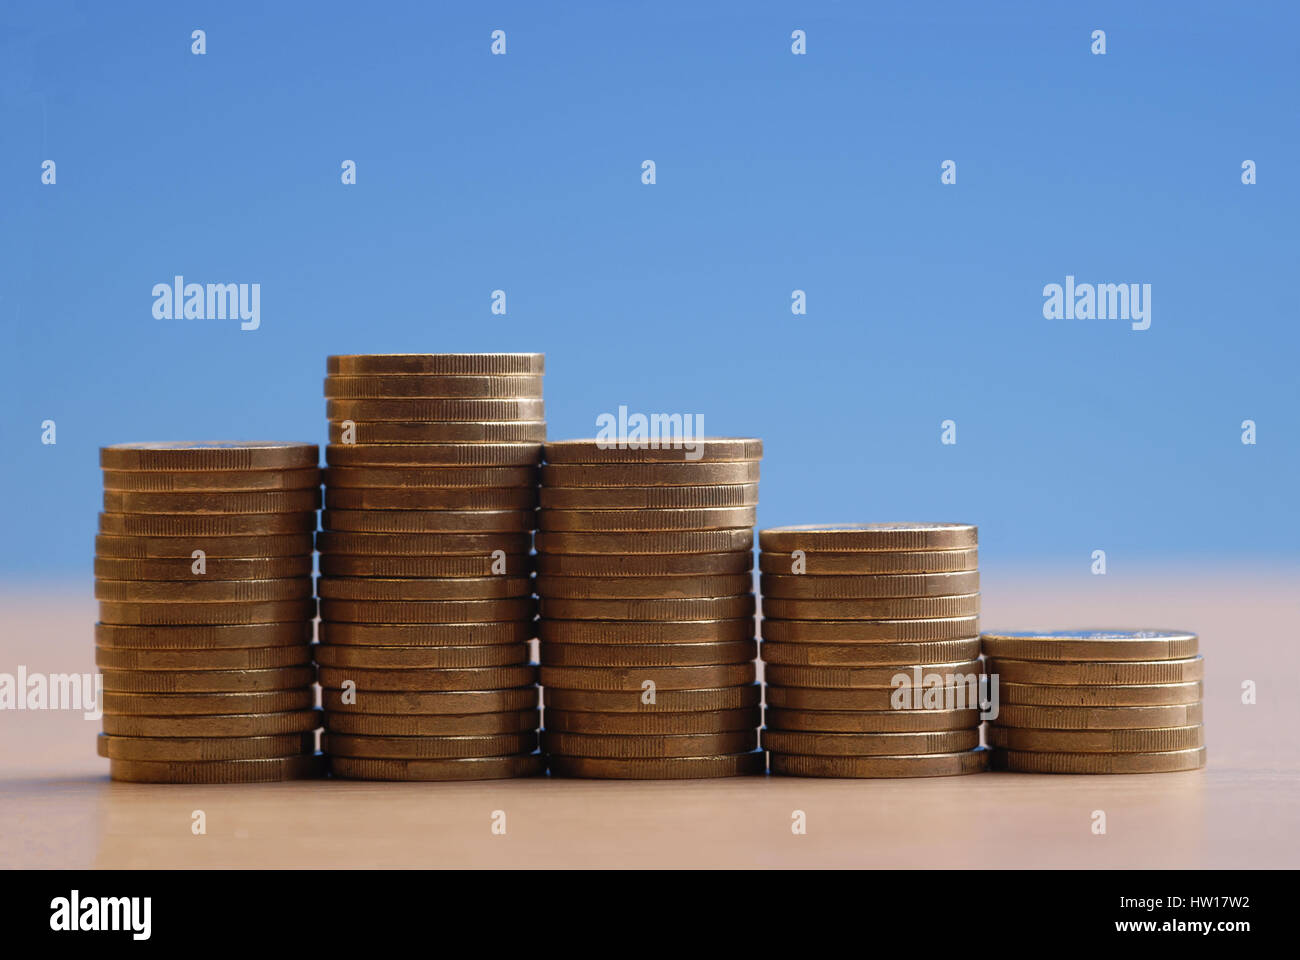 Coin pile, Münzstapel - Stock Image